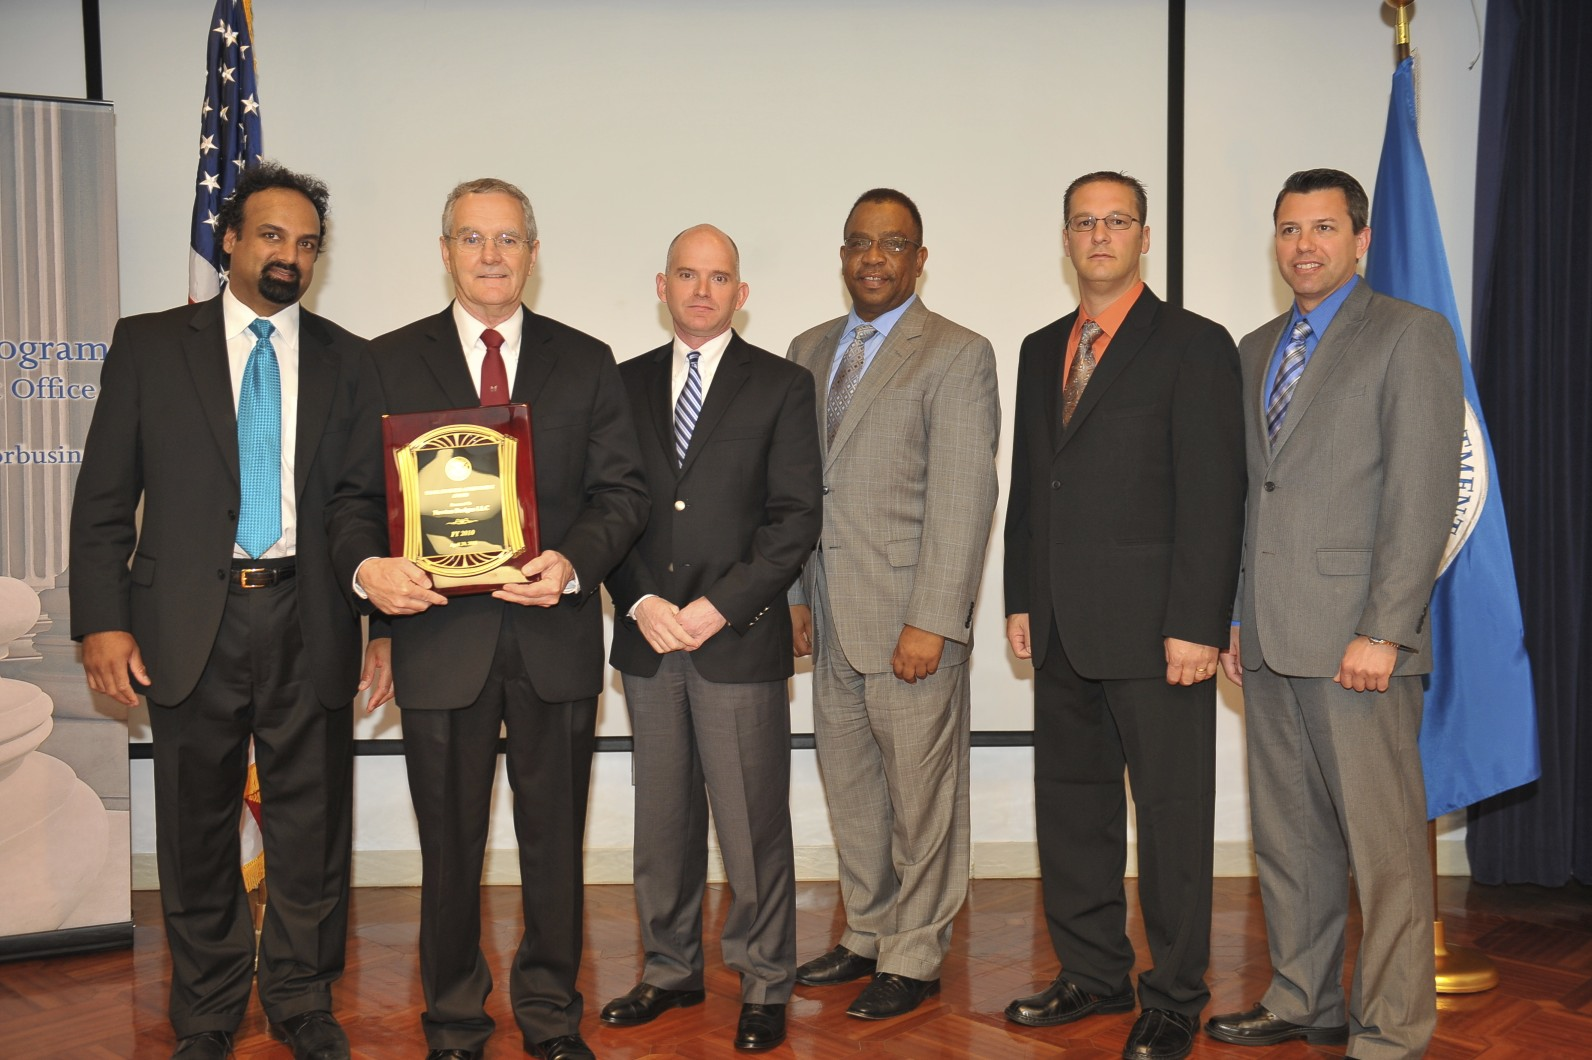 US Department of Homeland Security Small Business Award Recipient